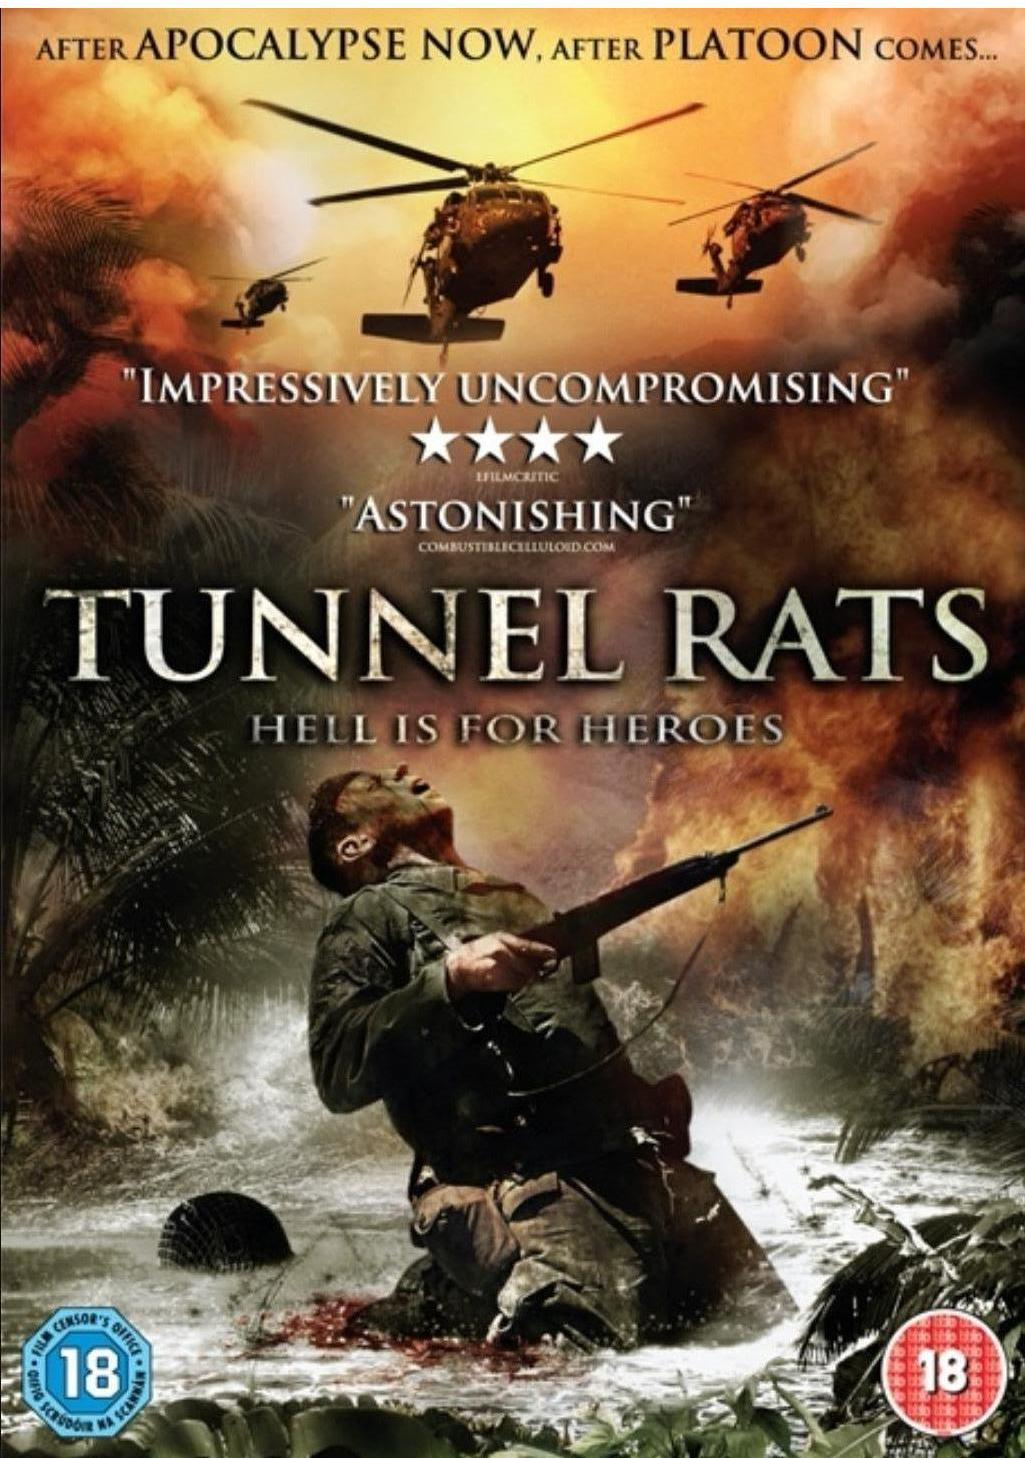 1968 Tunnel Rats (2008) / Tunnel Rats